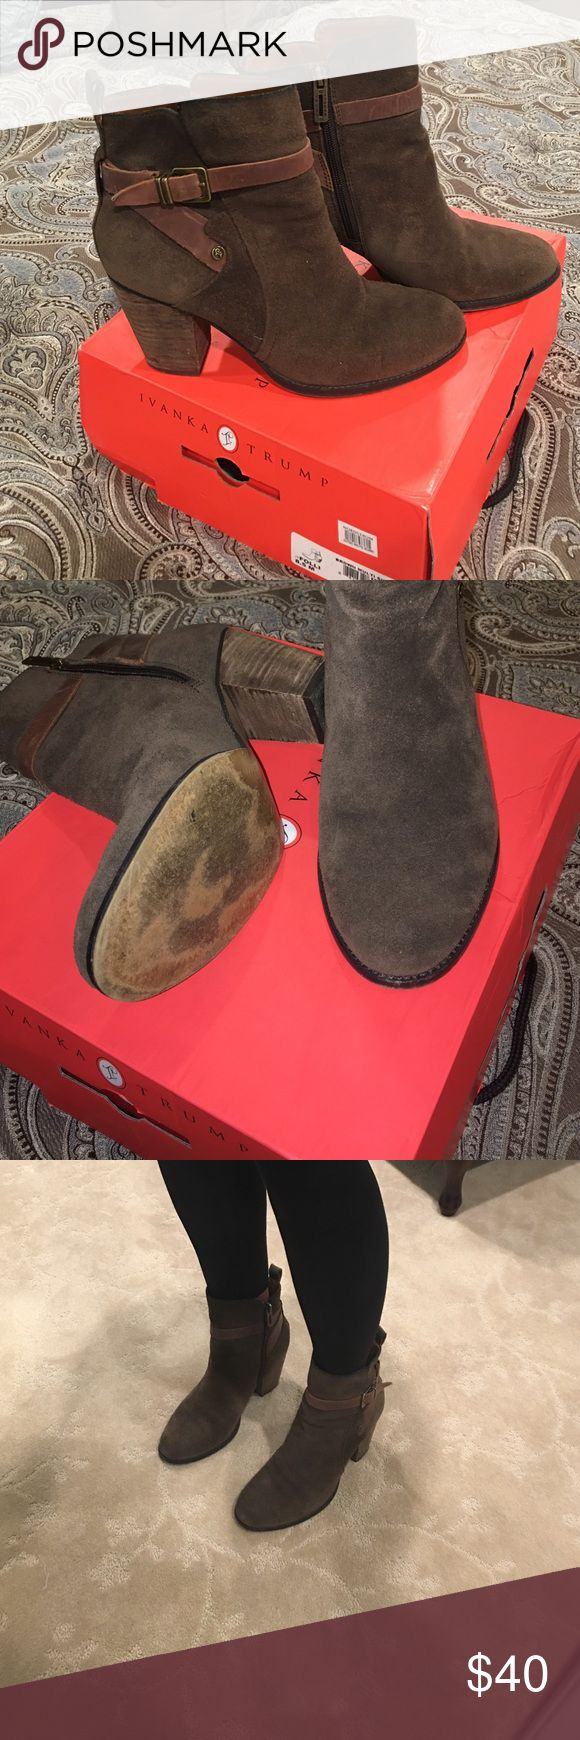 Ivanca Trump bootie Brown multi suede bootie. Has a buckle on the side. Zipper on inside. Great bootie for jeans or leggings . Super comfy ! A little worn on heel from driving ! Love this bootie! Ivanka Trump Shoes Ankle Boots & Booties